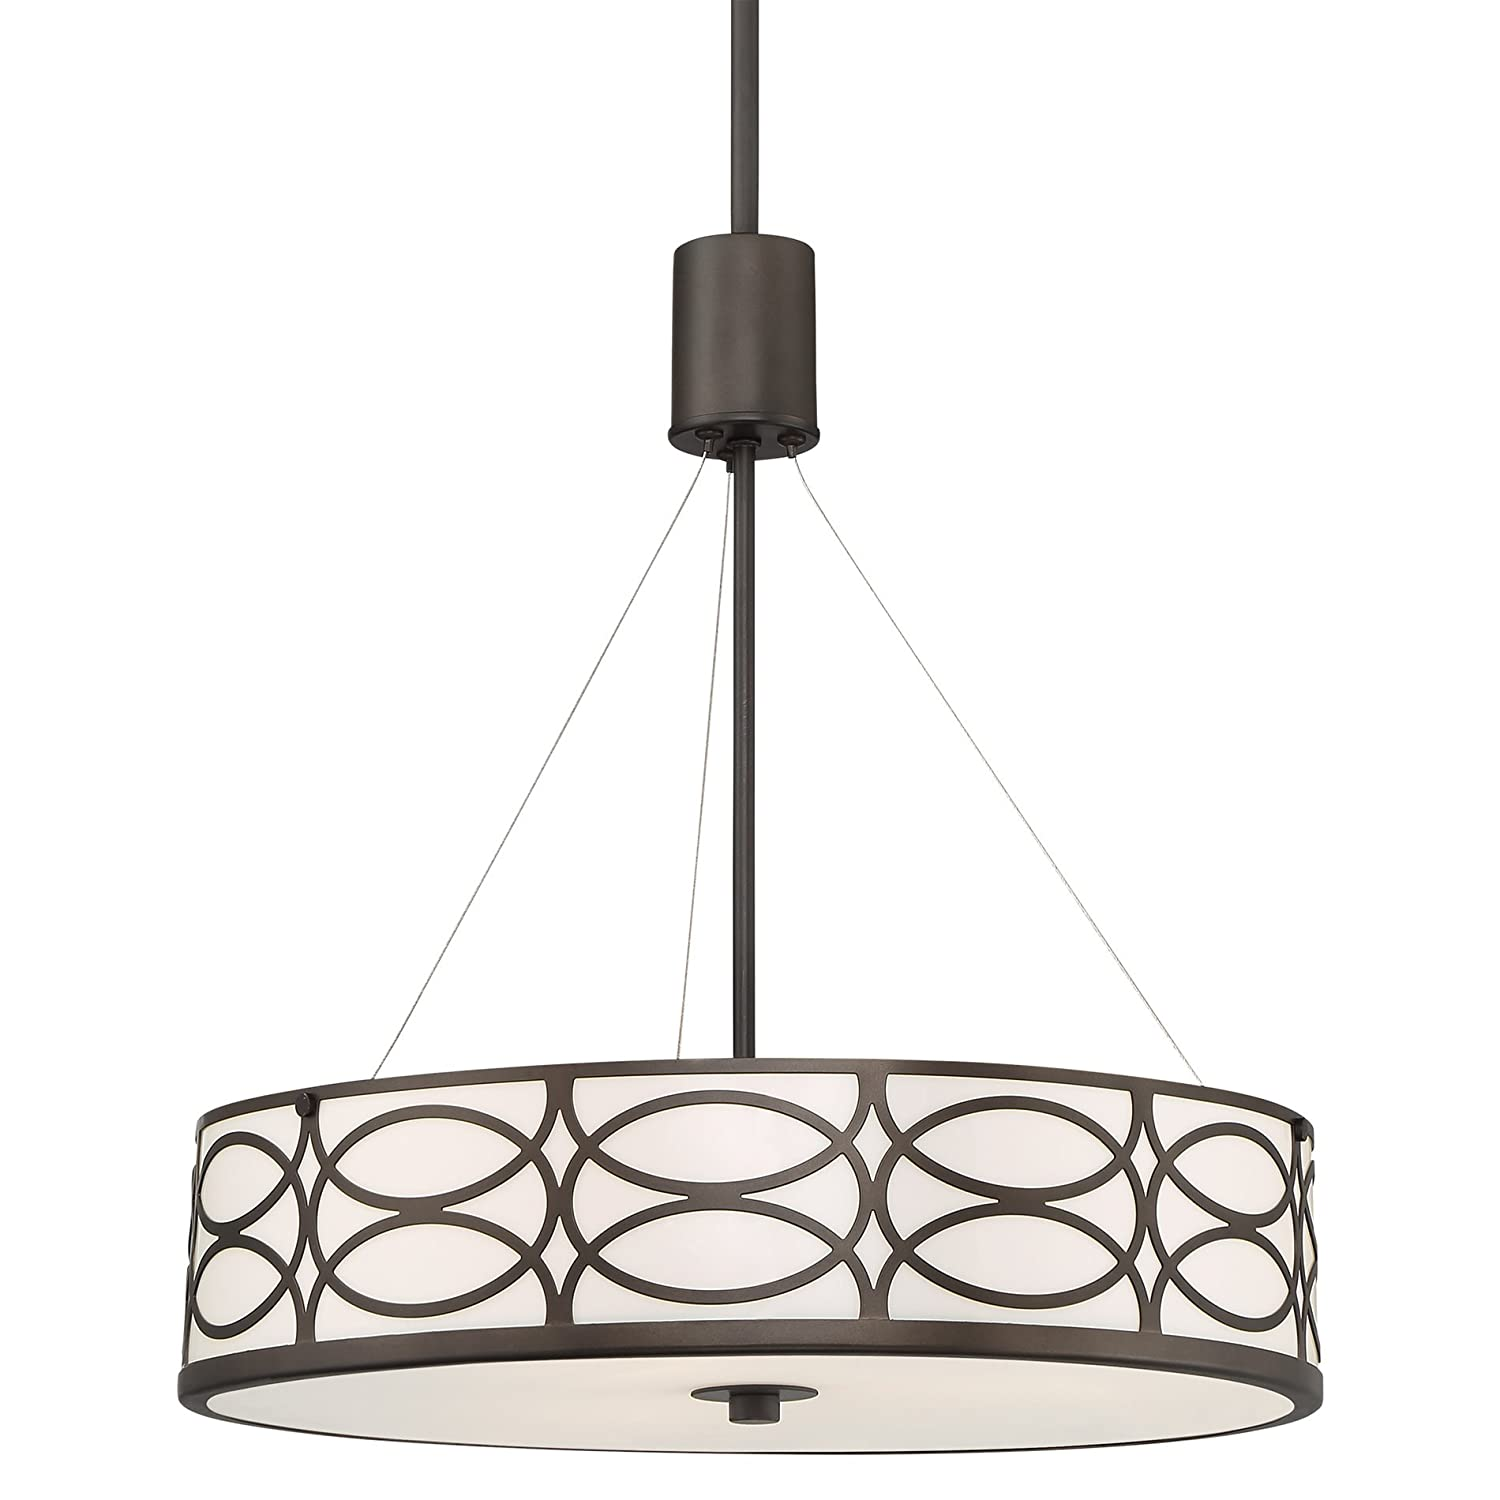 "Kira Home Sienna 18"" 3-Light Metal Drum Chandelier + Glass Diffuser, Oil-Rubbed Bronze Finish"